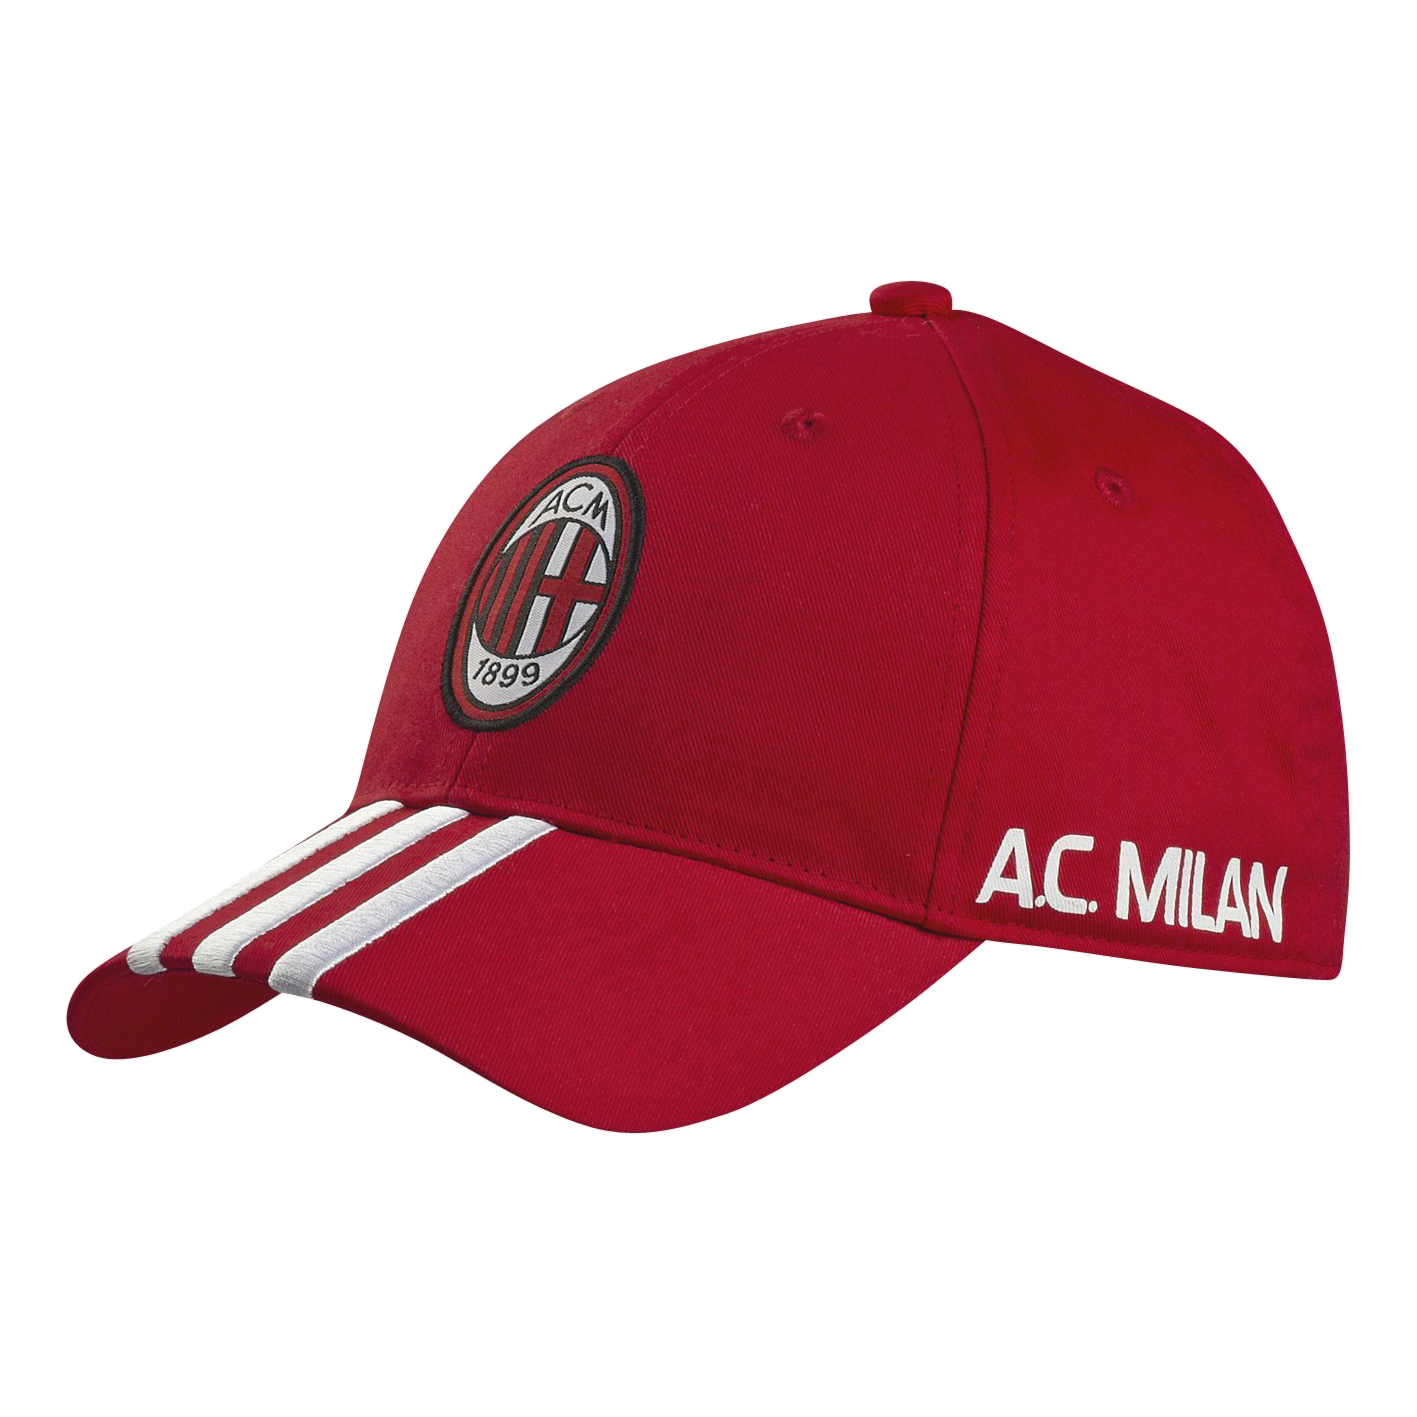 adidas AC Milan 3 Stripe Cap - Acm Red 98/White